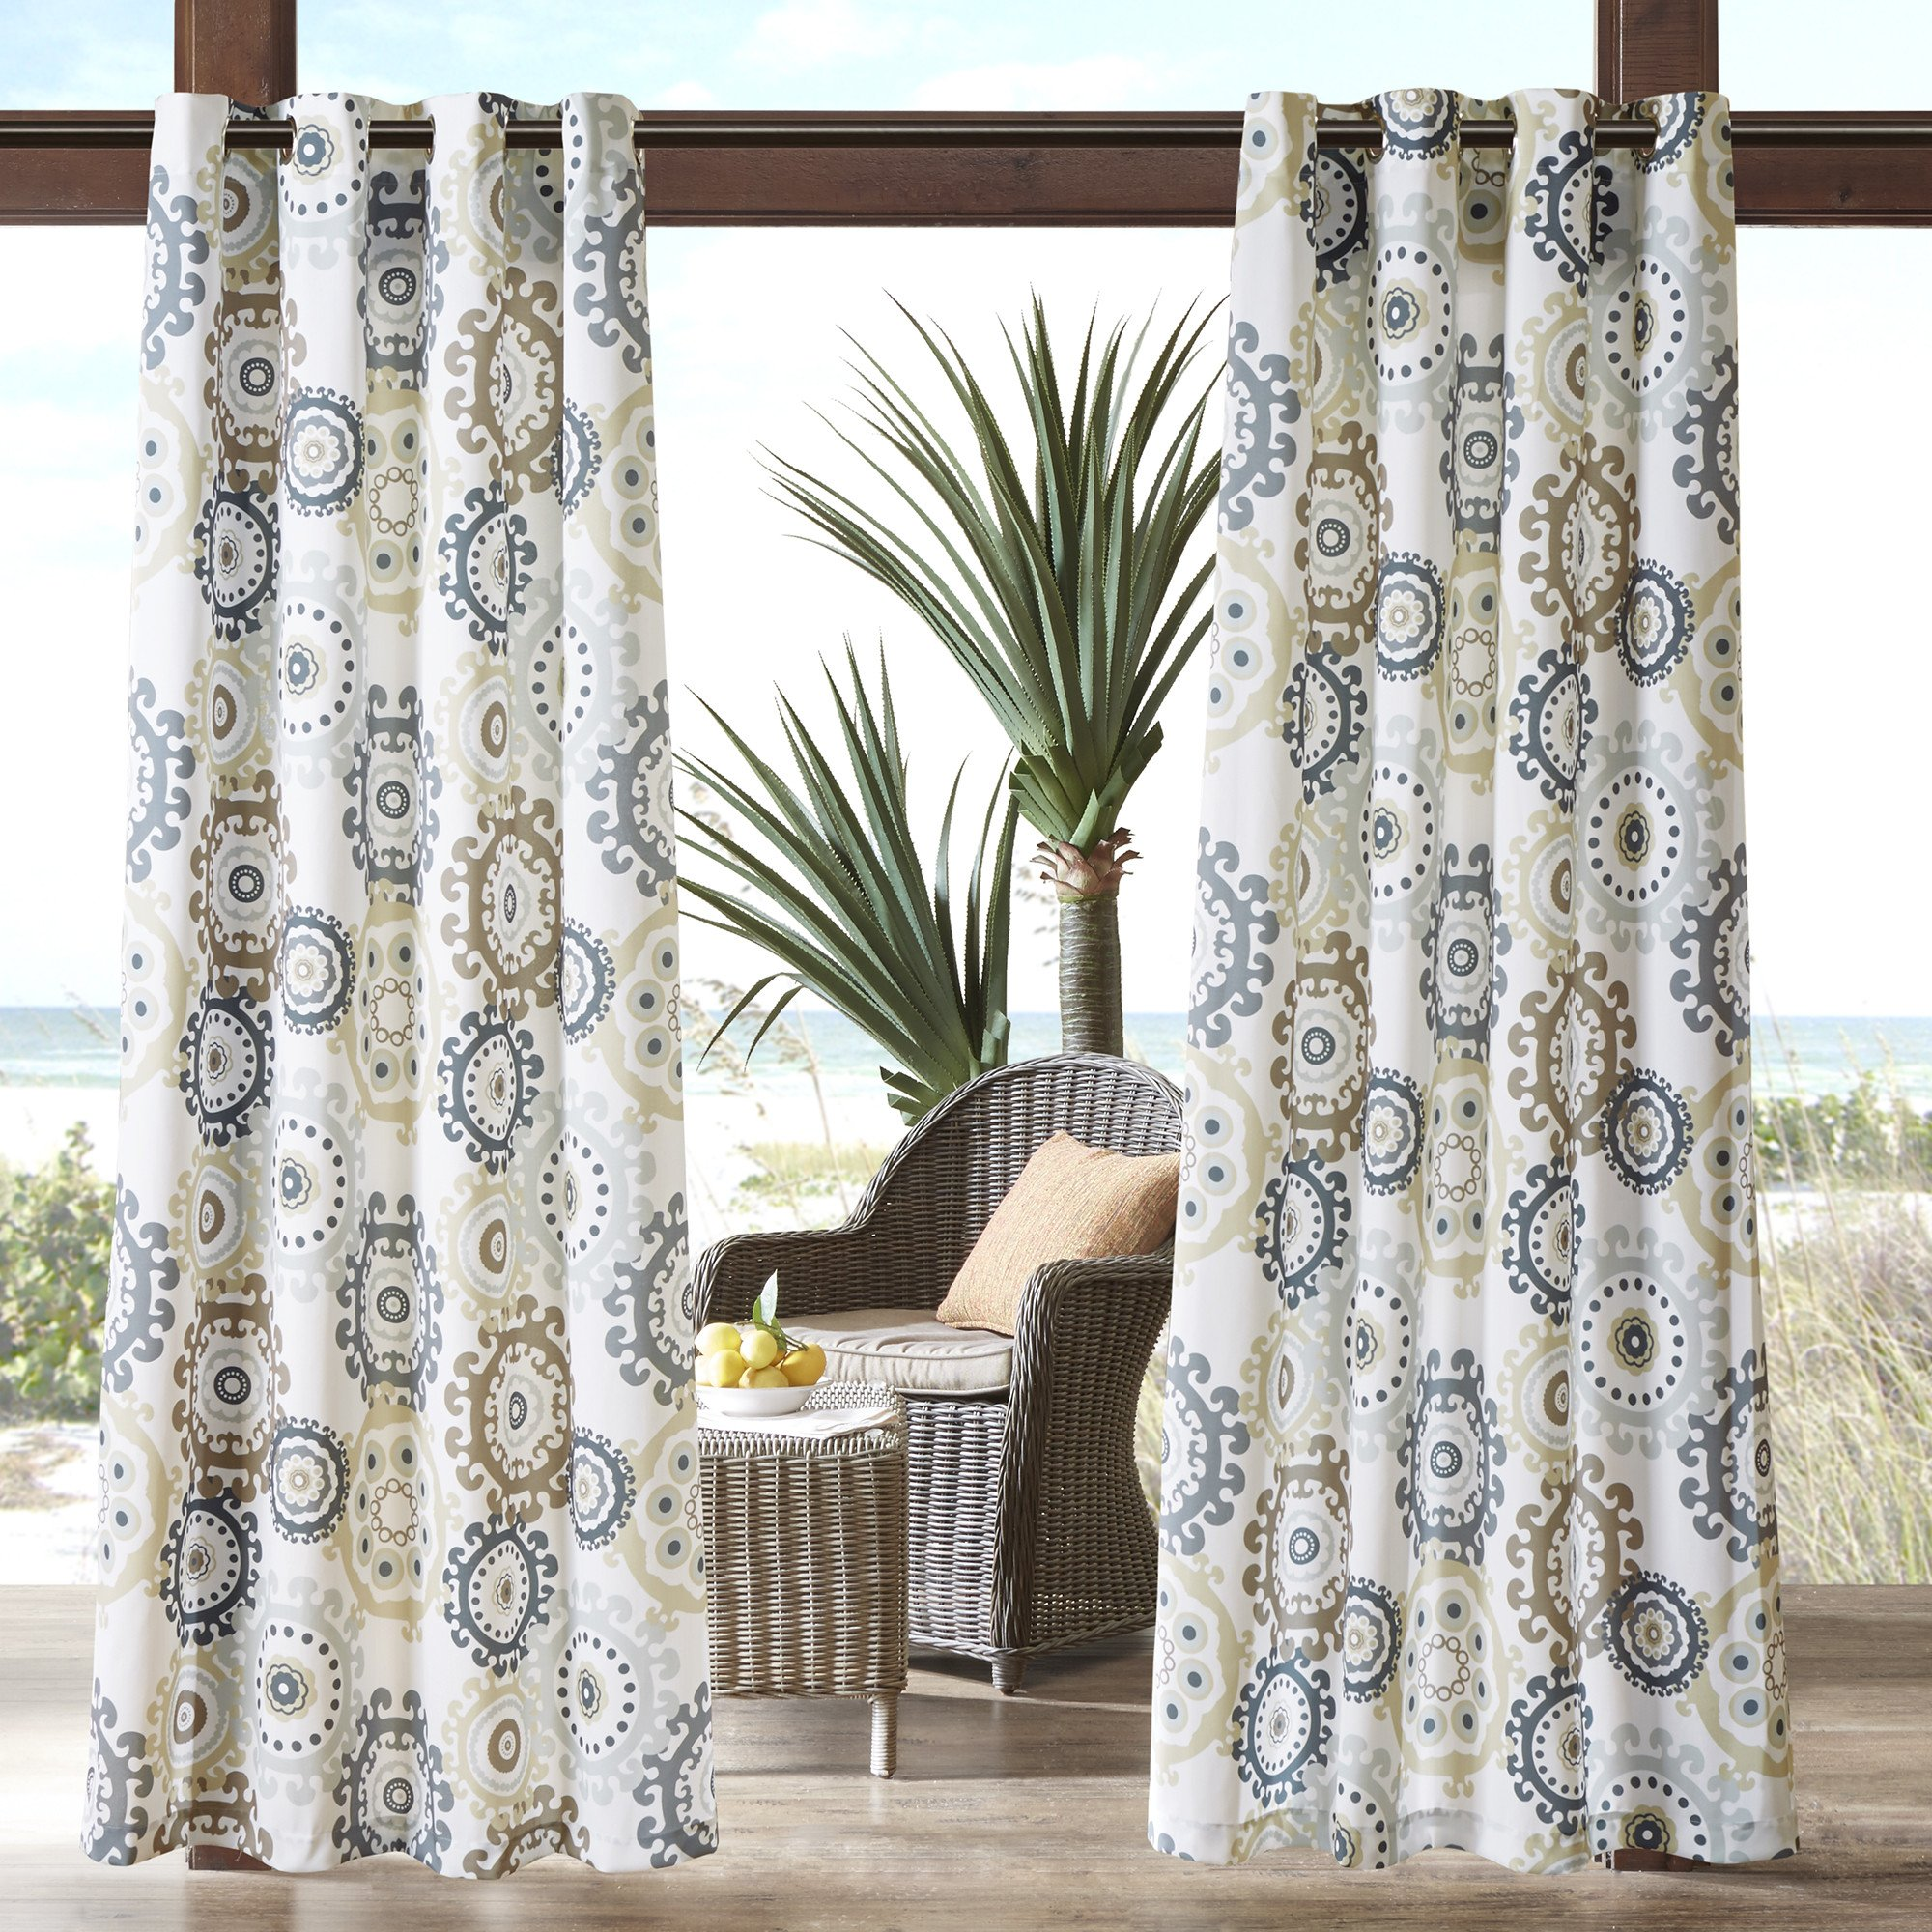 1 Piece Neutral Medallion Gazebo Curtain Panel 84 Inch, Gray Floral Print Outdoor Curtain Light Blocking For Patio Porch, Water Resistant Indoor/outdoor Drape Pergola Garden Sunroom Grommet, Polyester